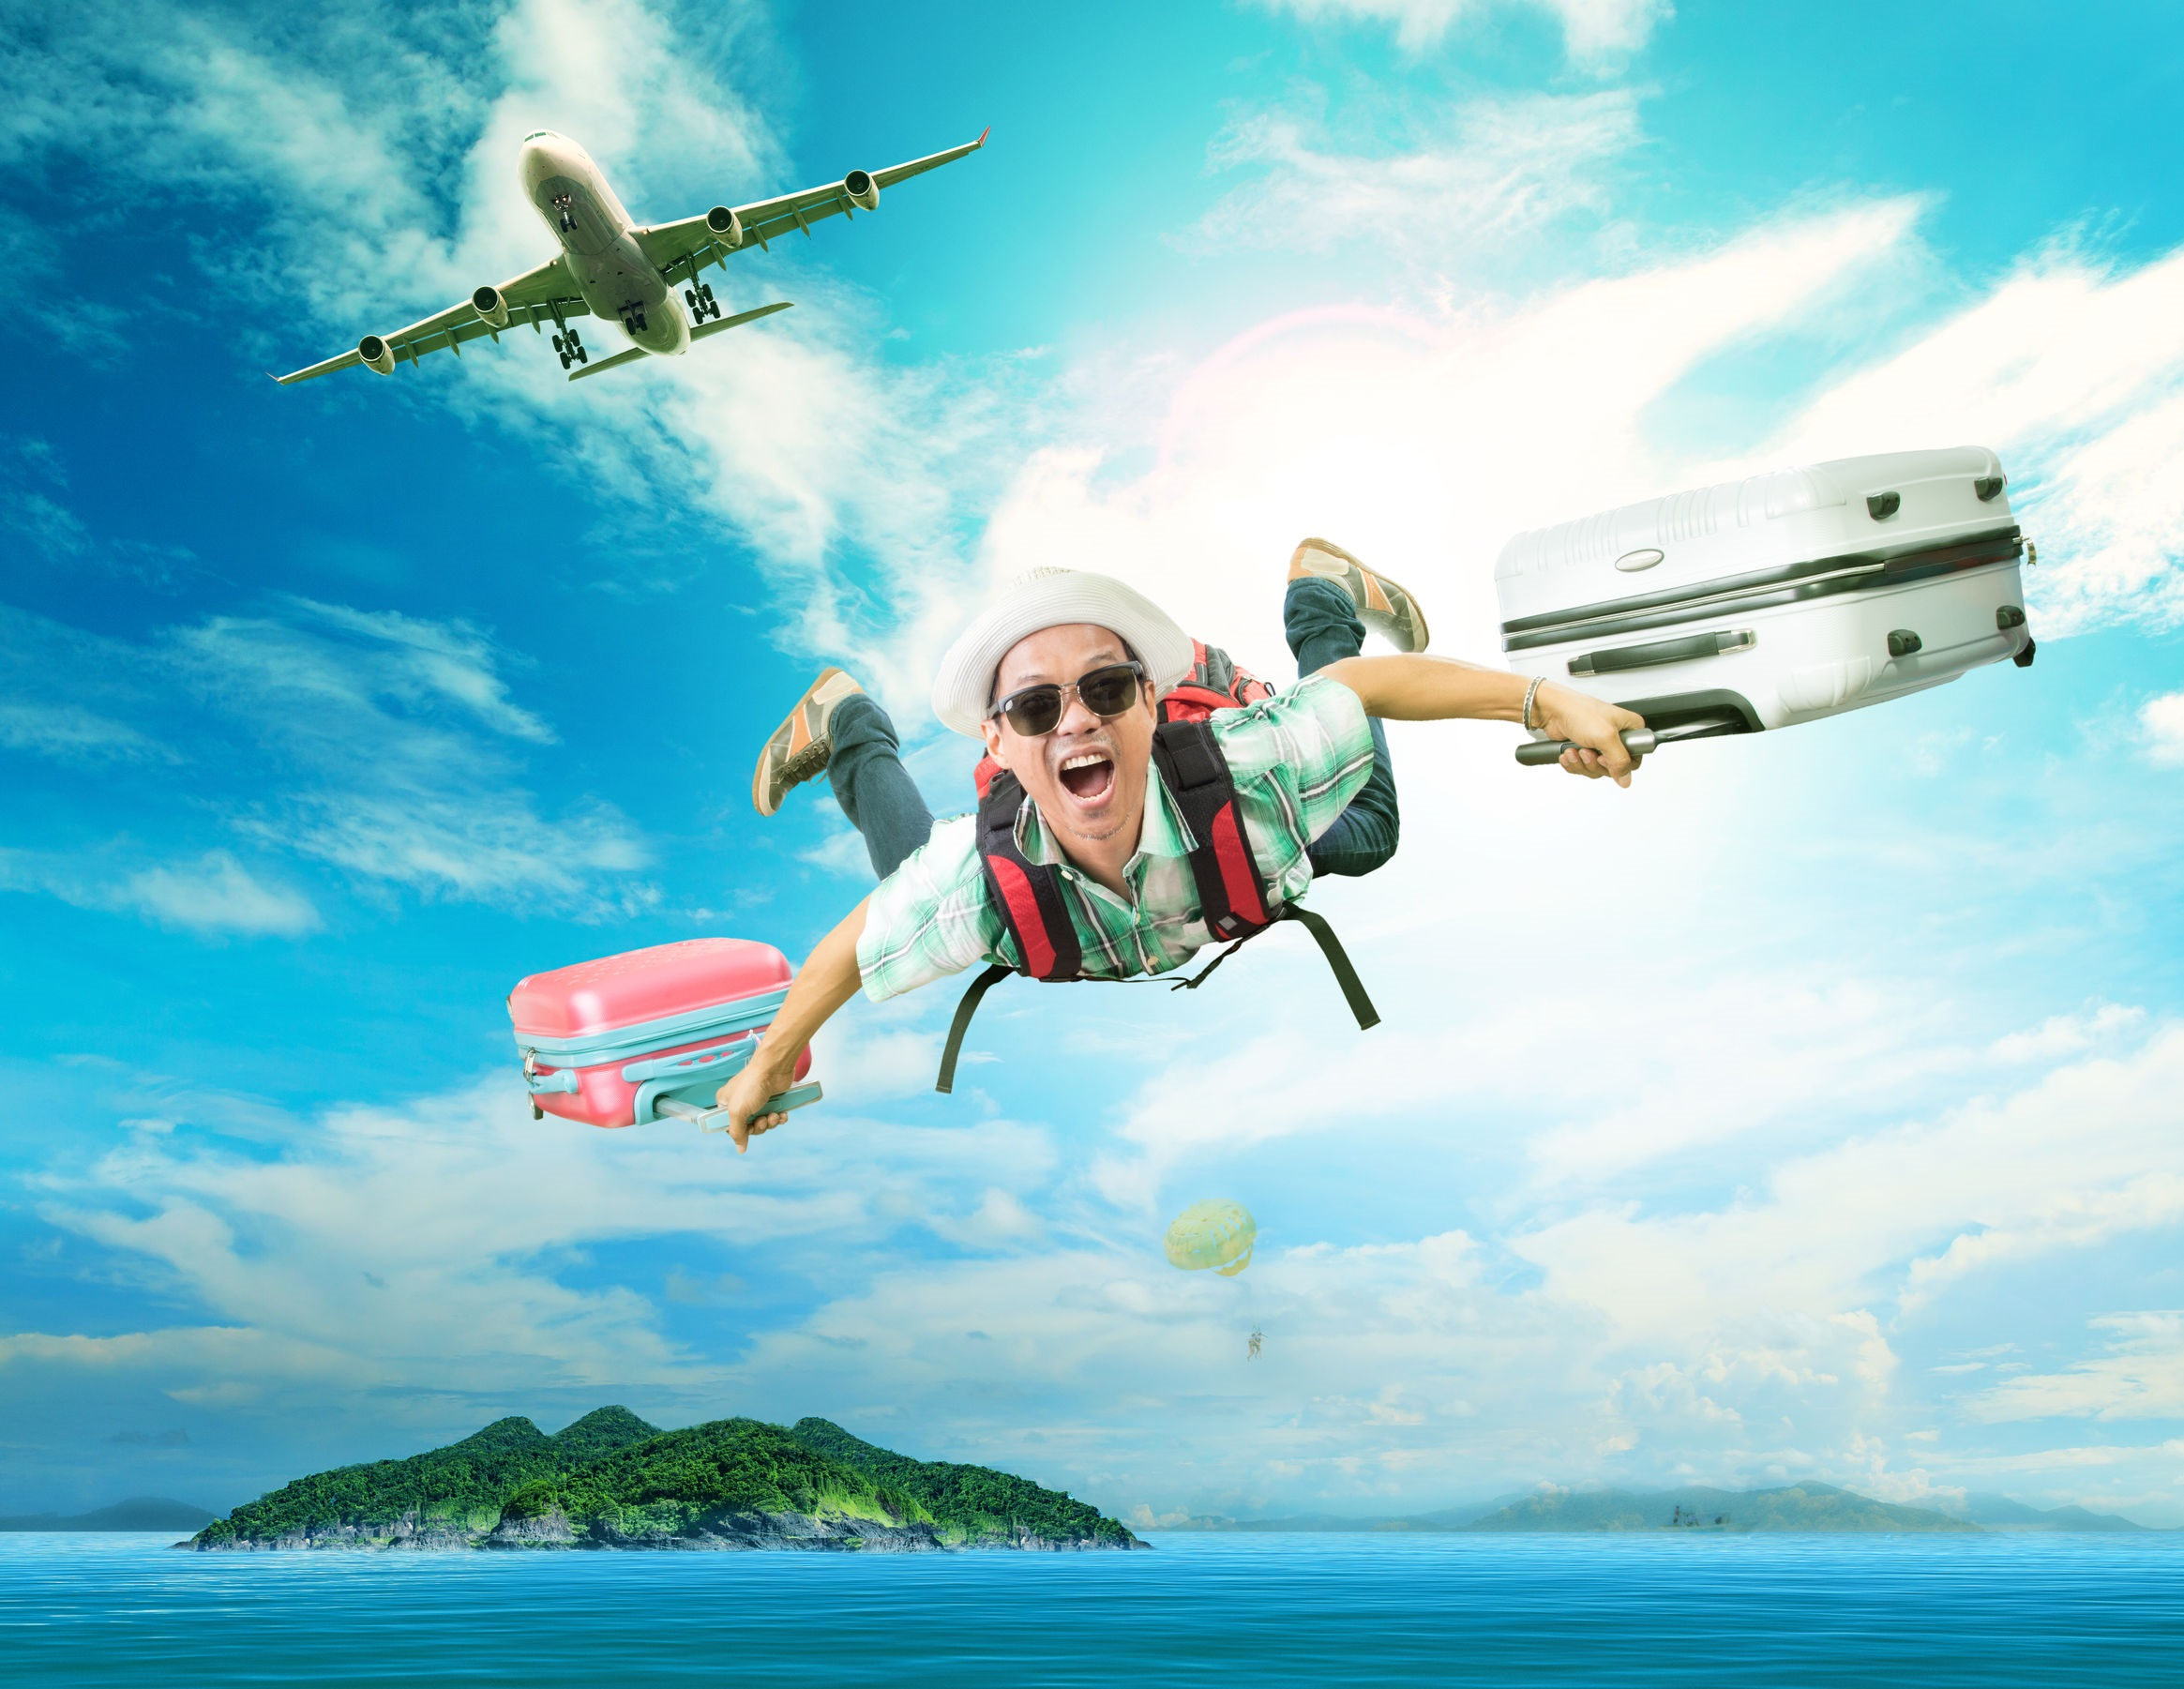 40132620 - young man flying from passenger plane to natural destination island on blue ocean with happiness face emotion use for people traveling on vacation holiday in summer season